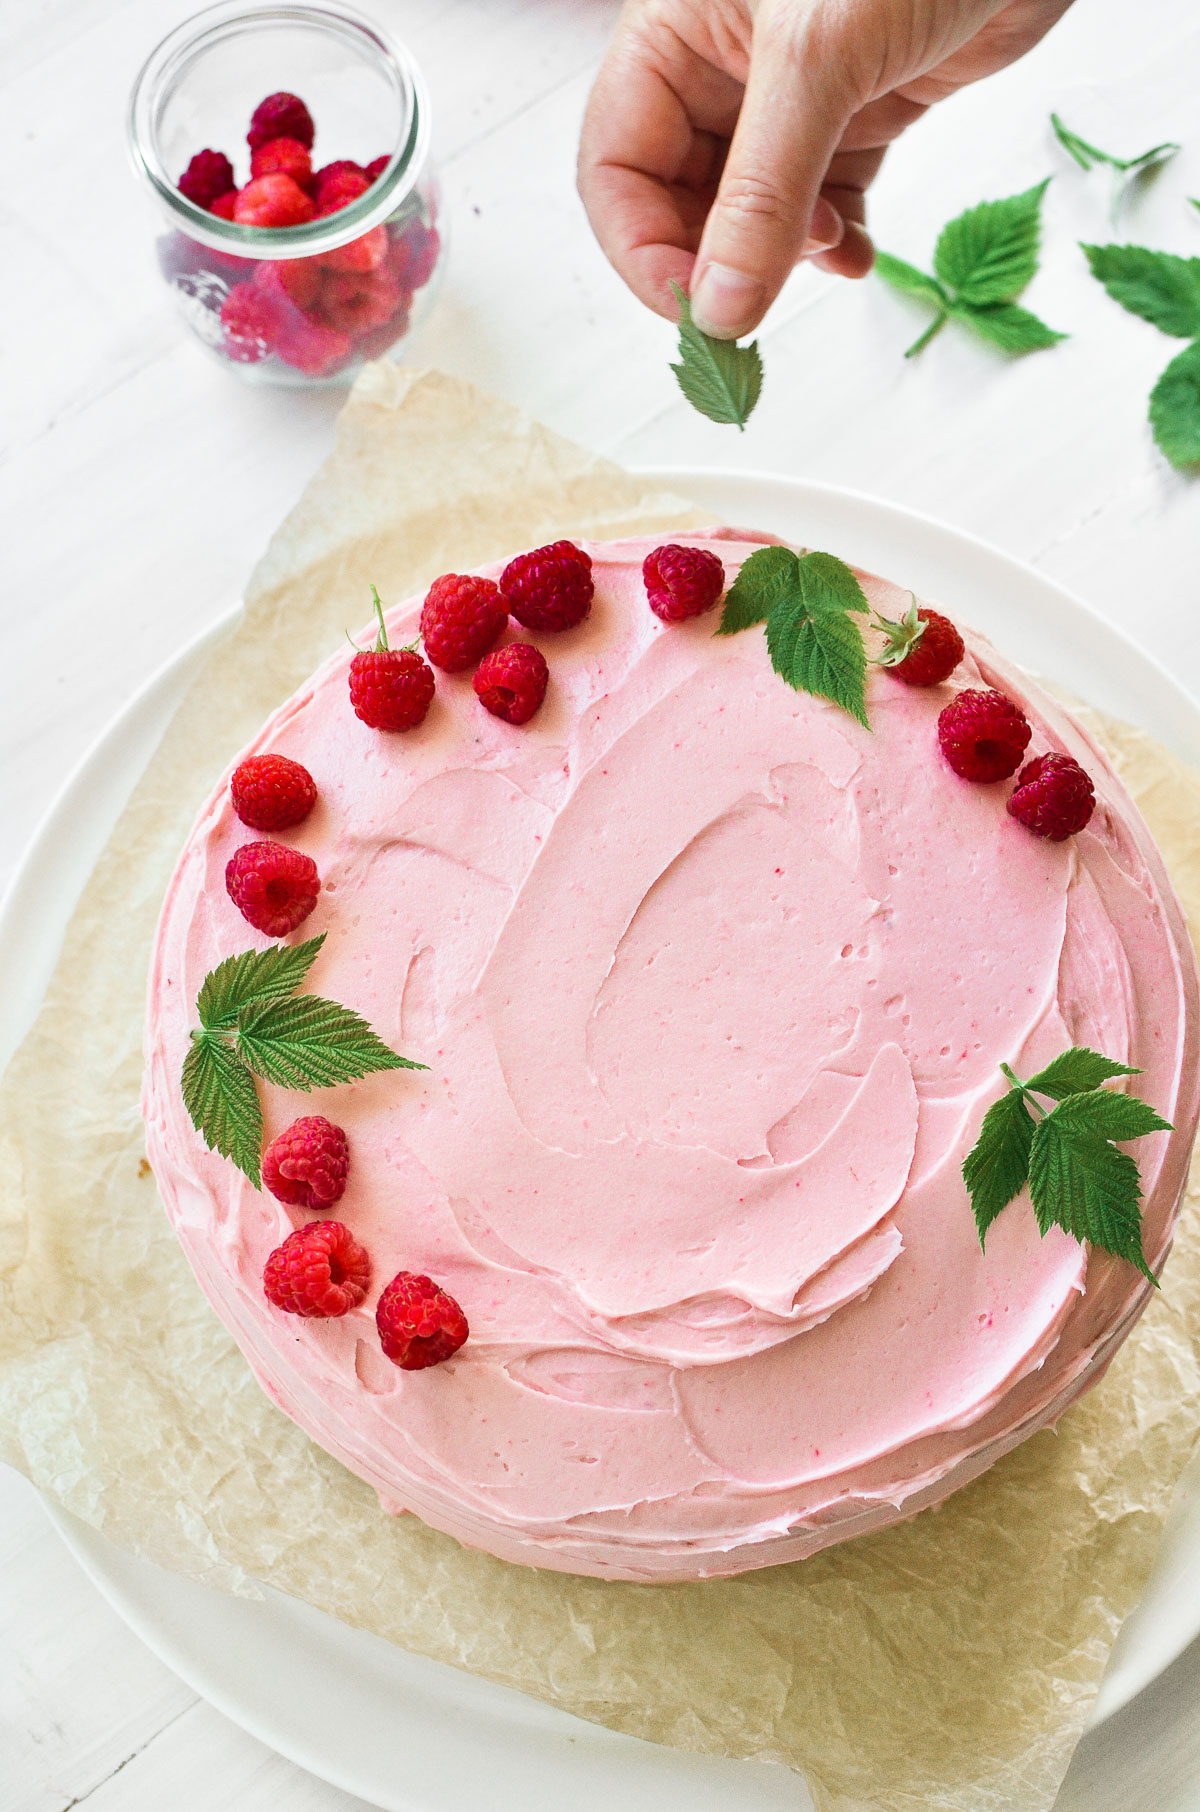 Topping a raspberry layer cake with raspberries and raspberry leaves.